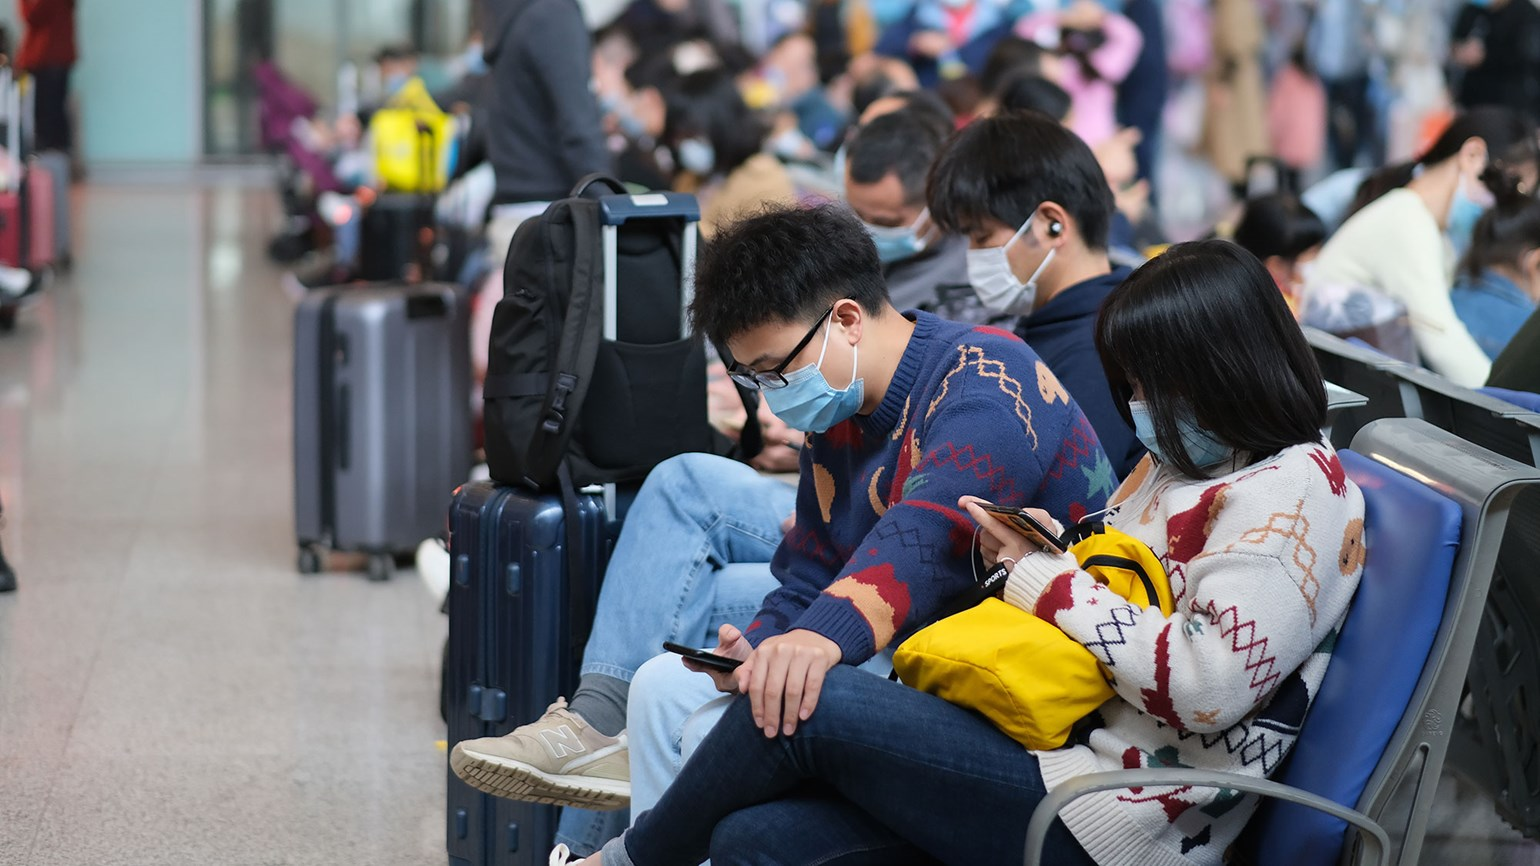 Planes flying, people traveling. China is recovering, but how?